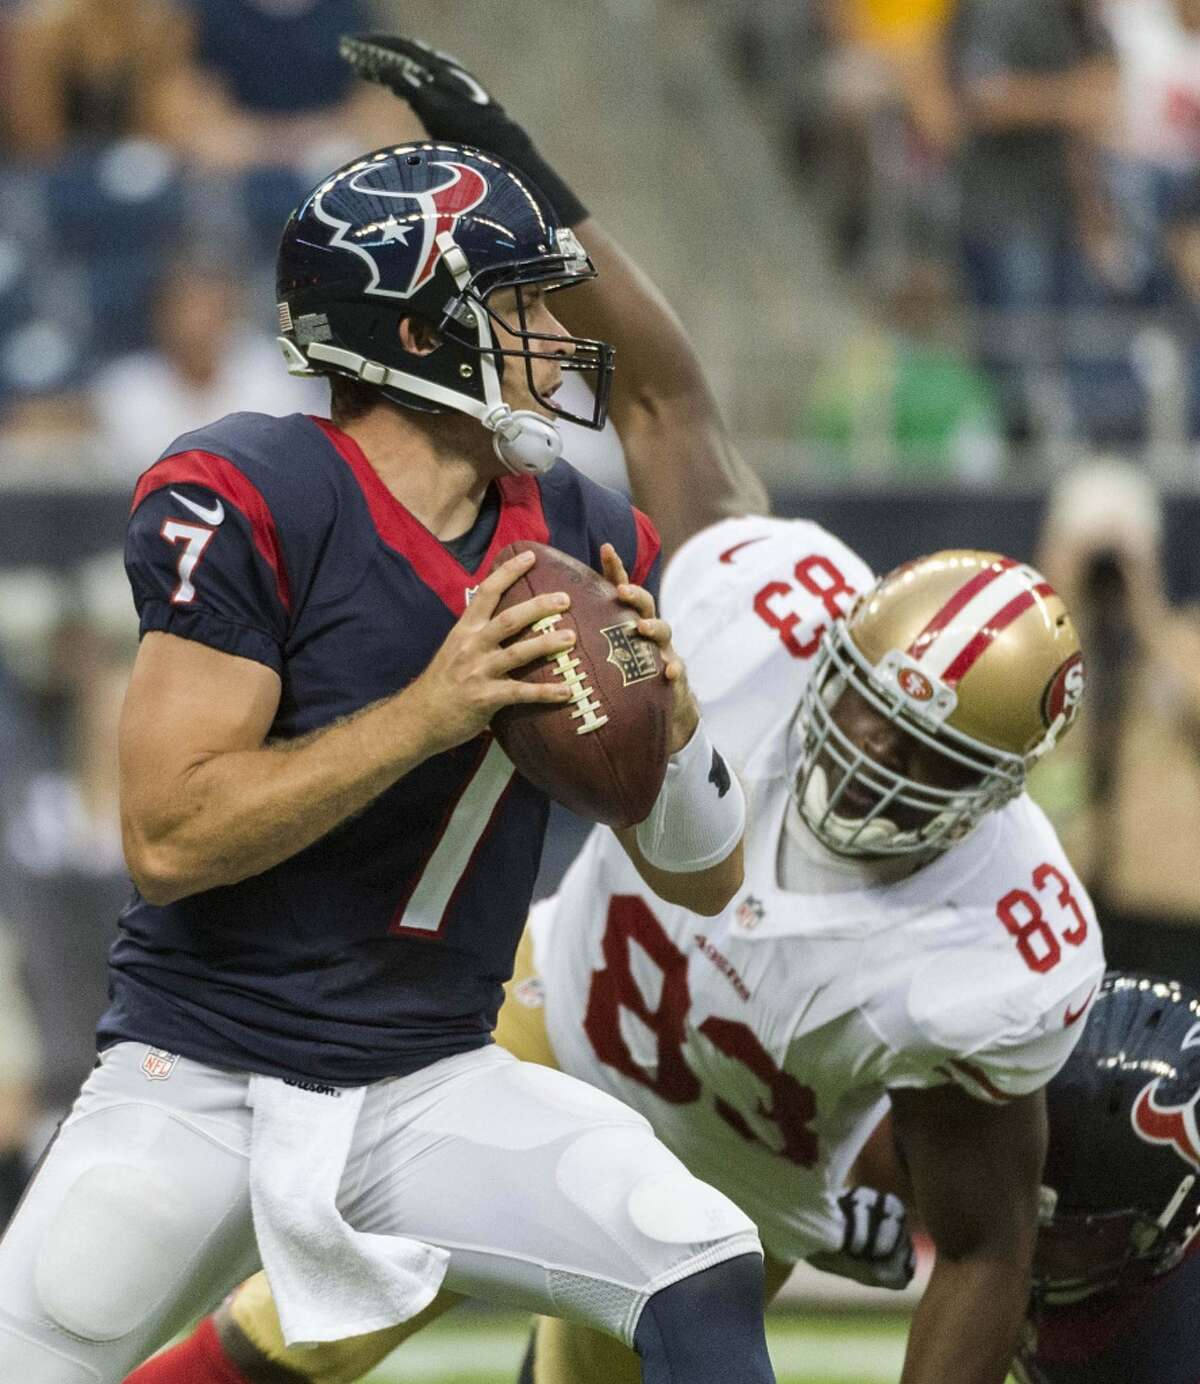 Houston Texans quarterback Case Keenum (7) tries to elude the rush from San Francisco 49ers tight end Demarcus Dobbs (83) during the first quarter of an NFL preseason football game at NRG Stadium on Thursday, Aug. 28, 2014, in Houston. ( Smiley N. Pool / Houston Chronicle )